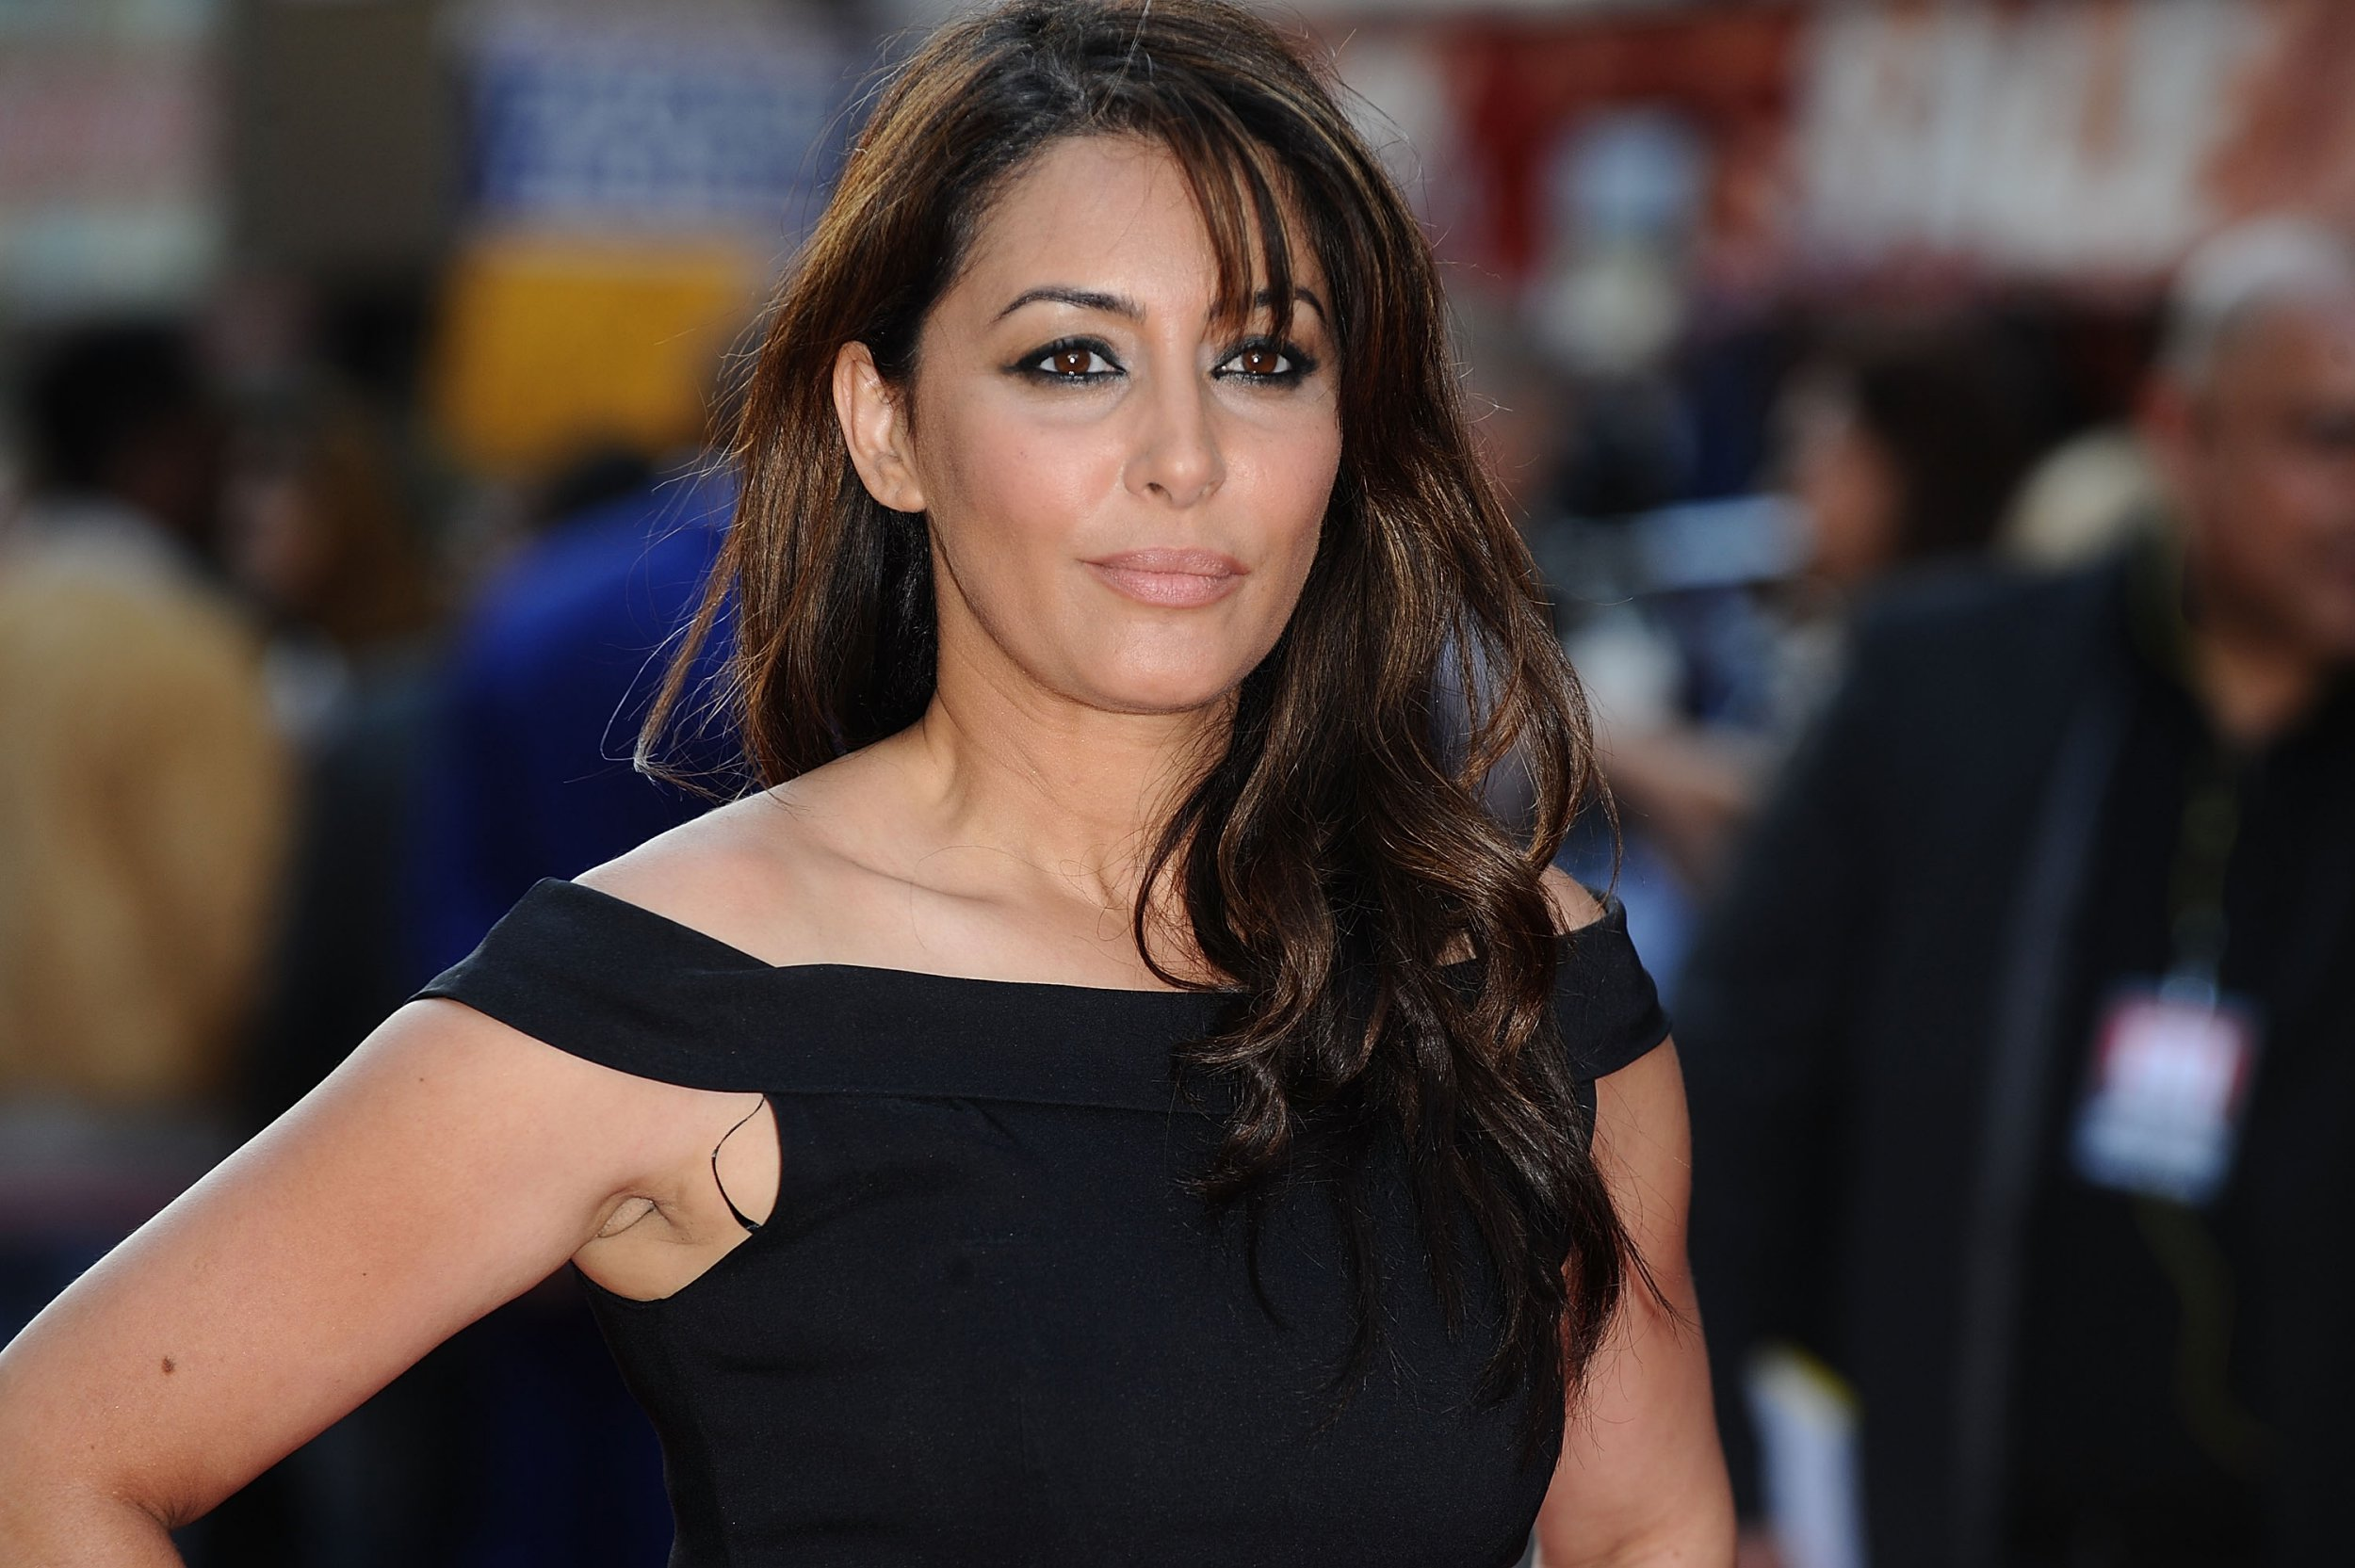 LONDON, ENGLAND - MAY 30: Laila Rouass attends world premiere of 'Ill Manors' at Empire Leicester Square on May 30, 2012 in London, England. (Photo by Ferdaus Shamim/WireImage)